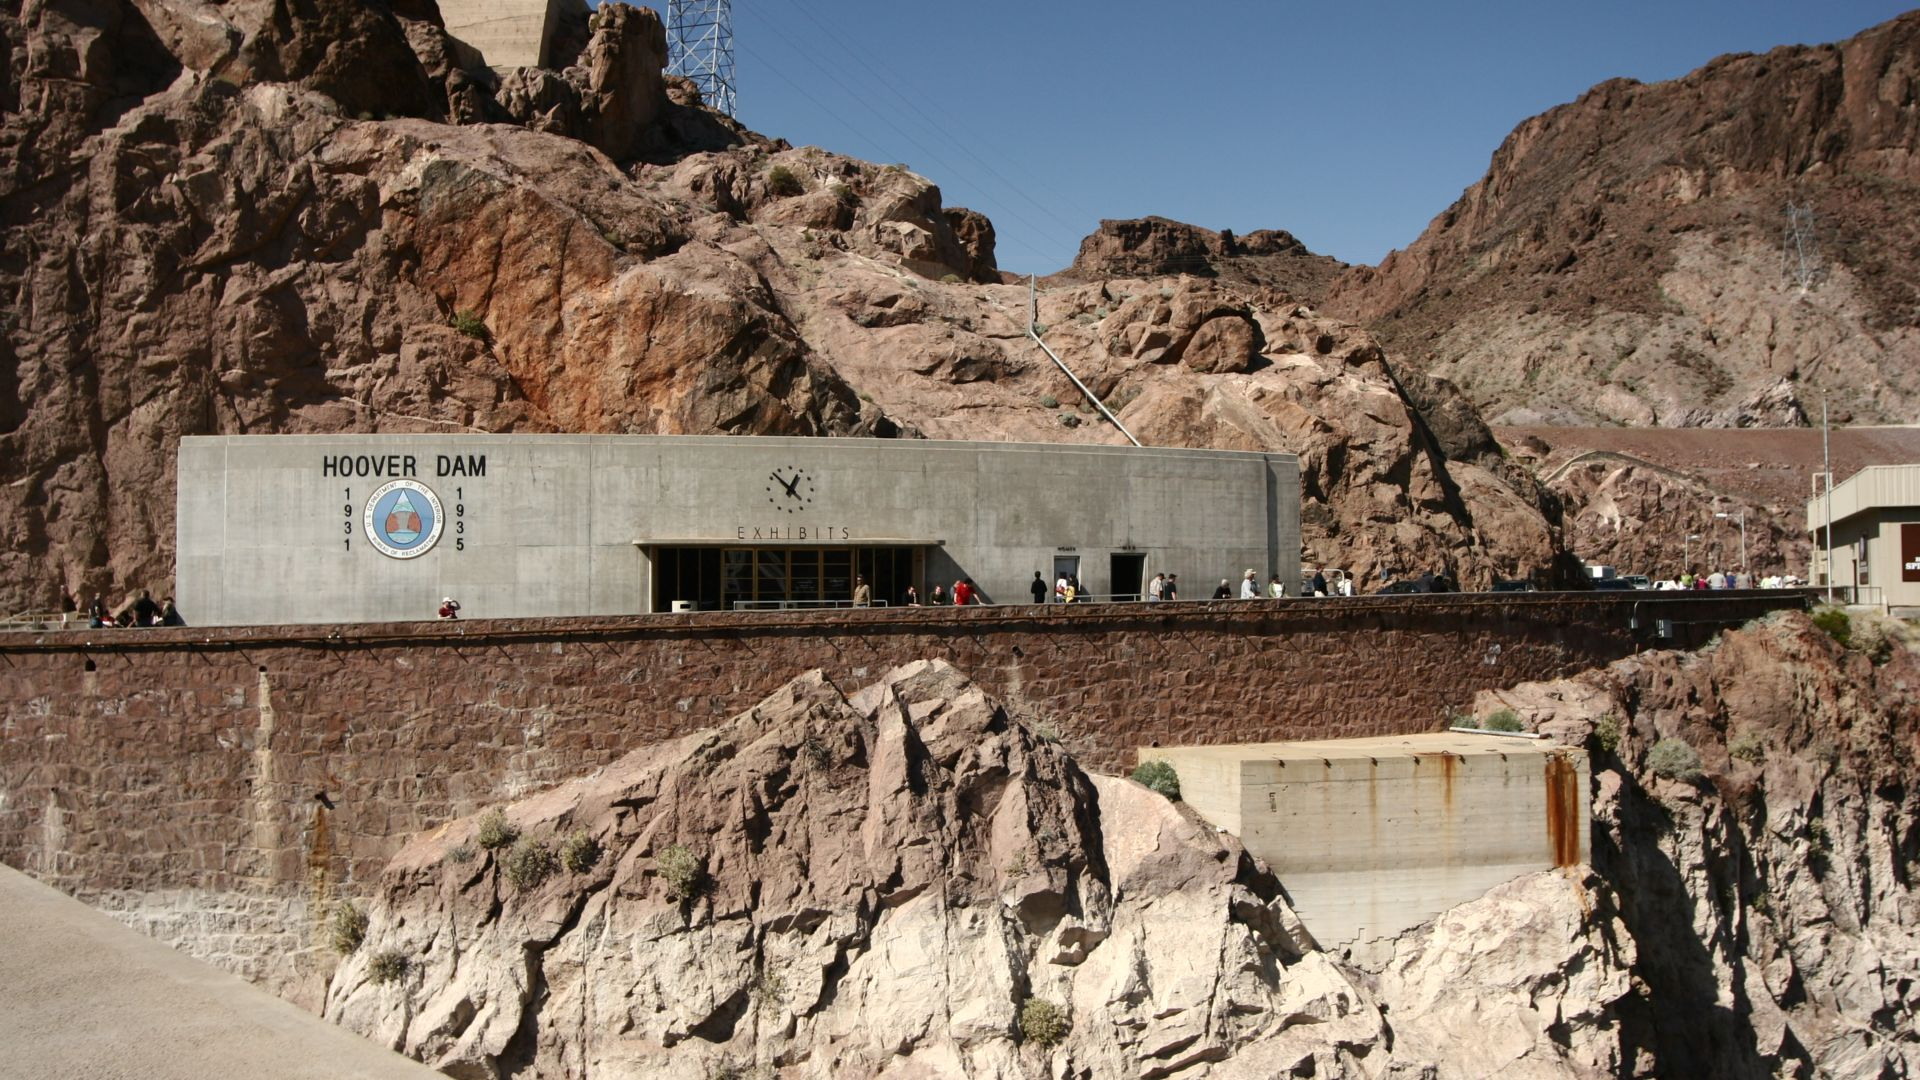 Exhibits entrance at Hoover Dam